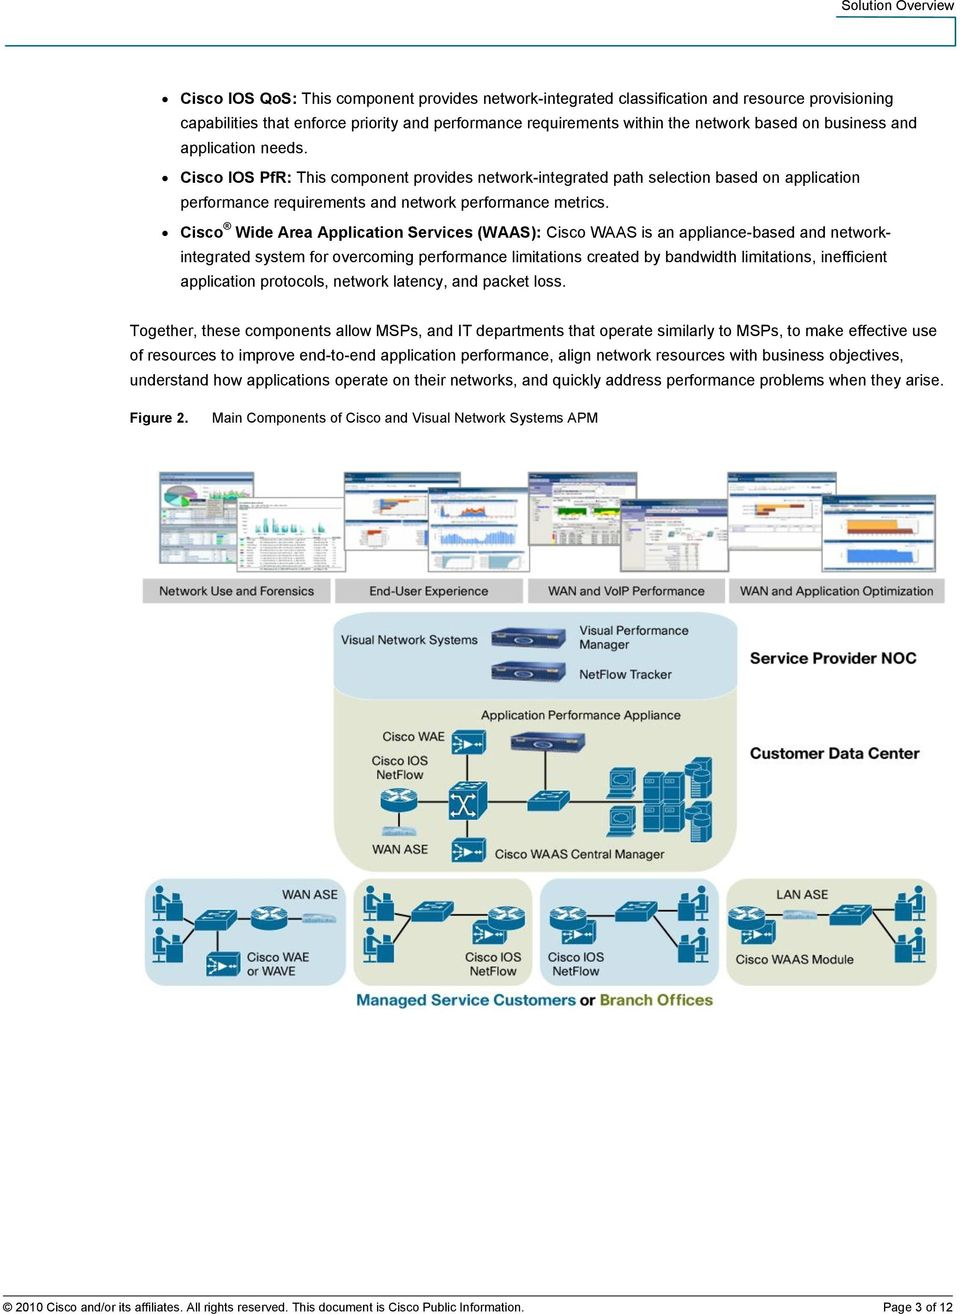 Cisco Wide Area Application Services (WAAS): Cisco WAAS is an appliance-based and networkintegrated system for overcoming performance limitations created by bandwidth limitations, inefficient